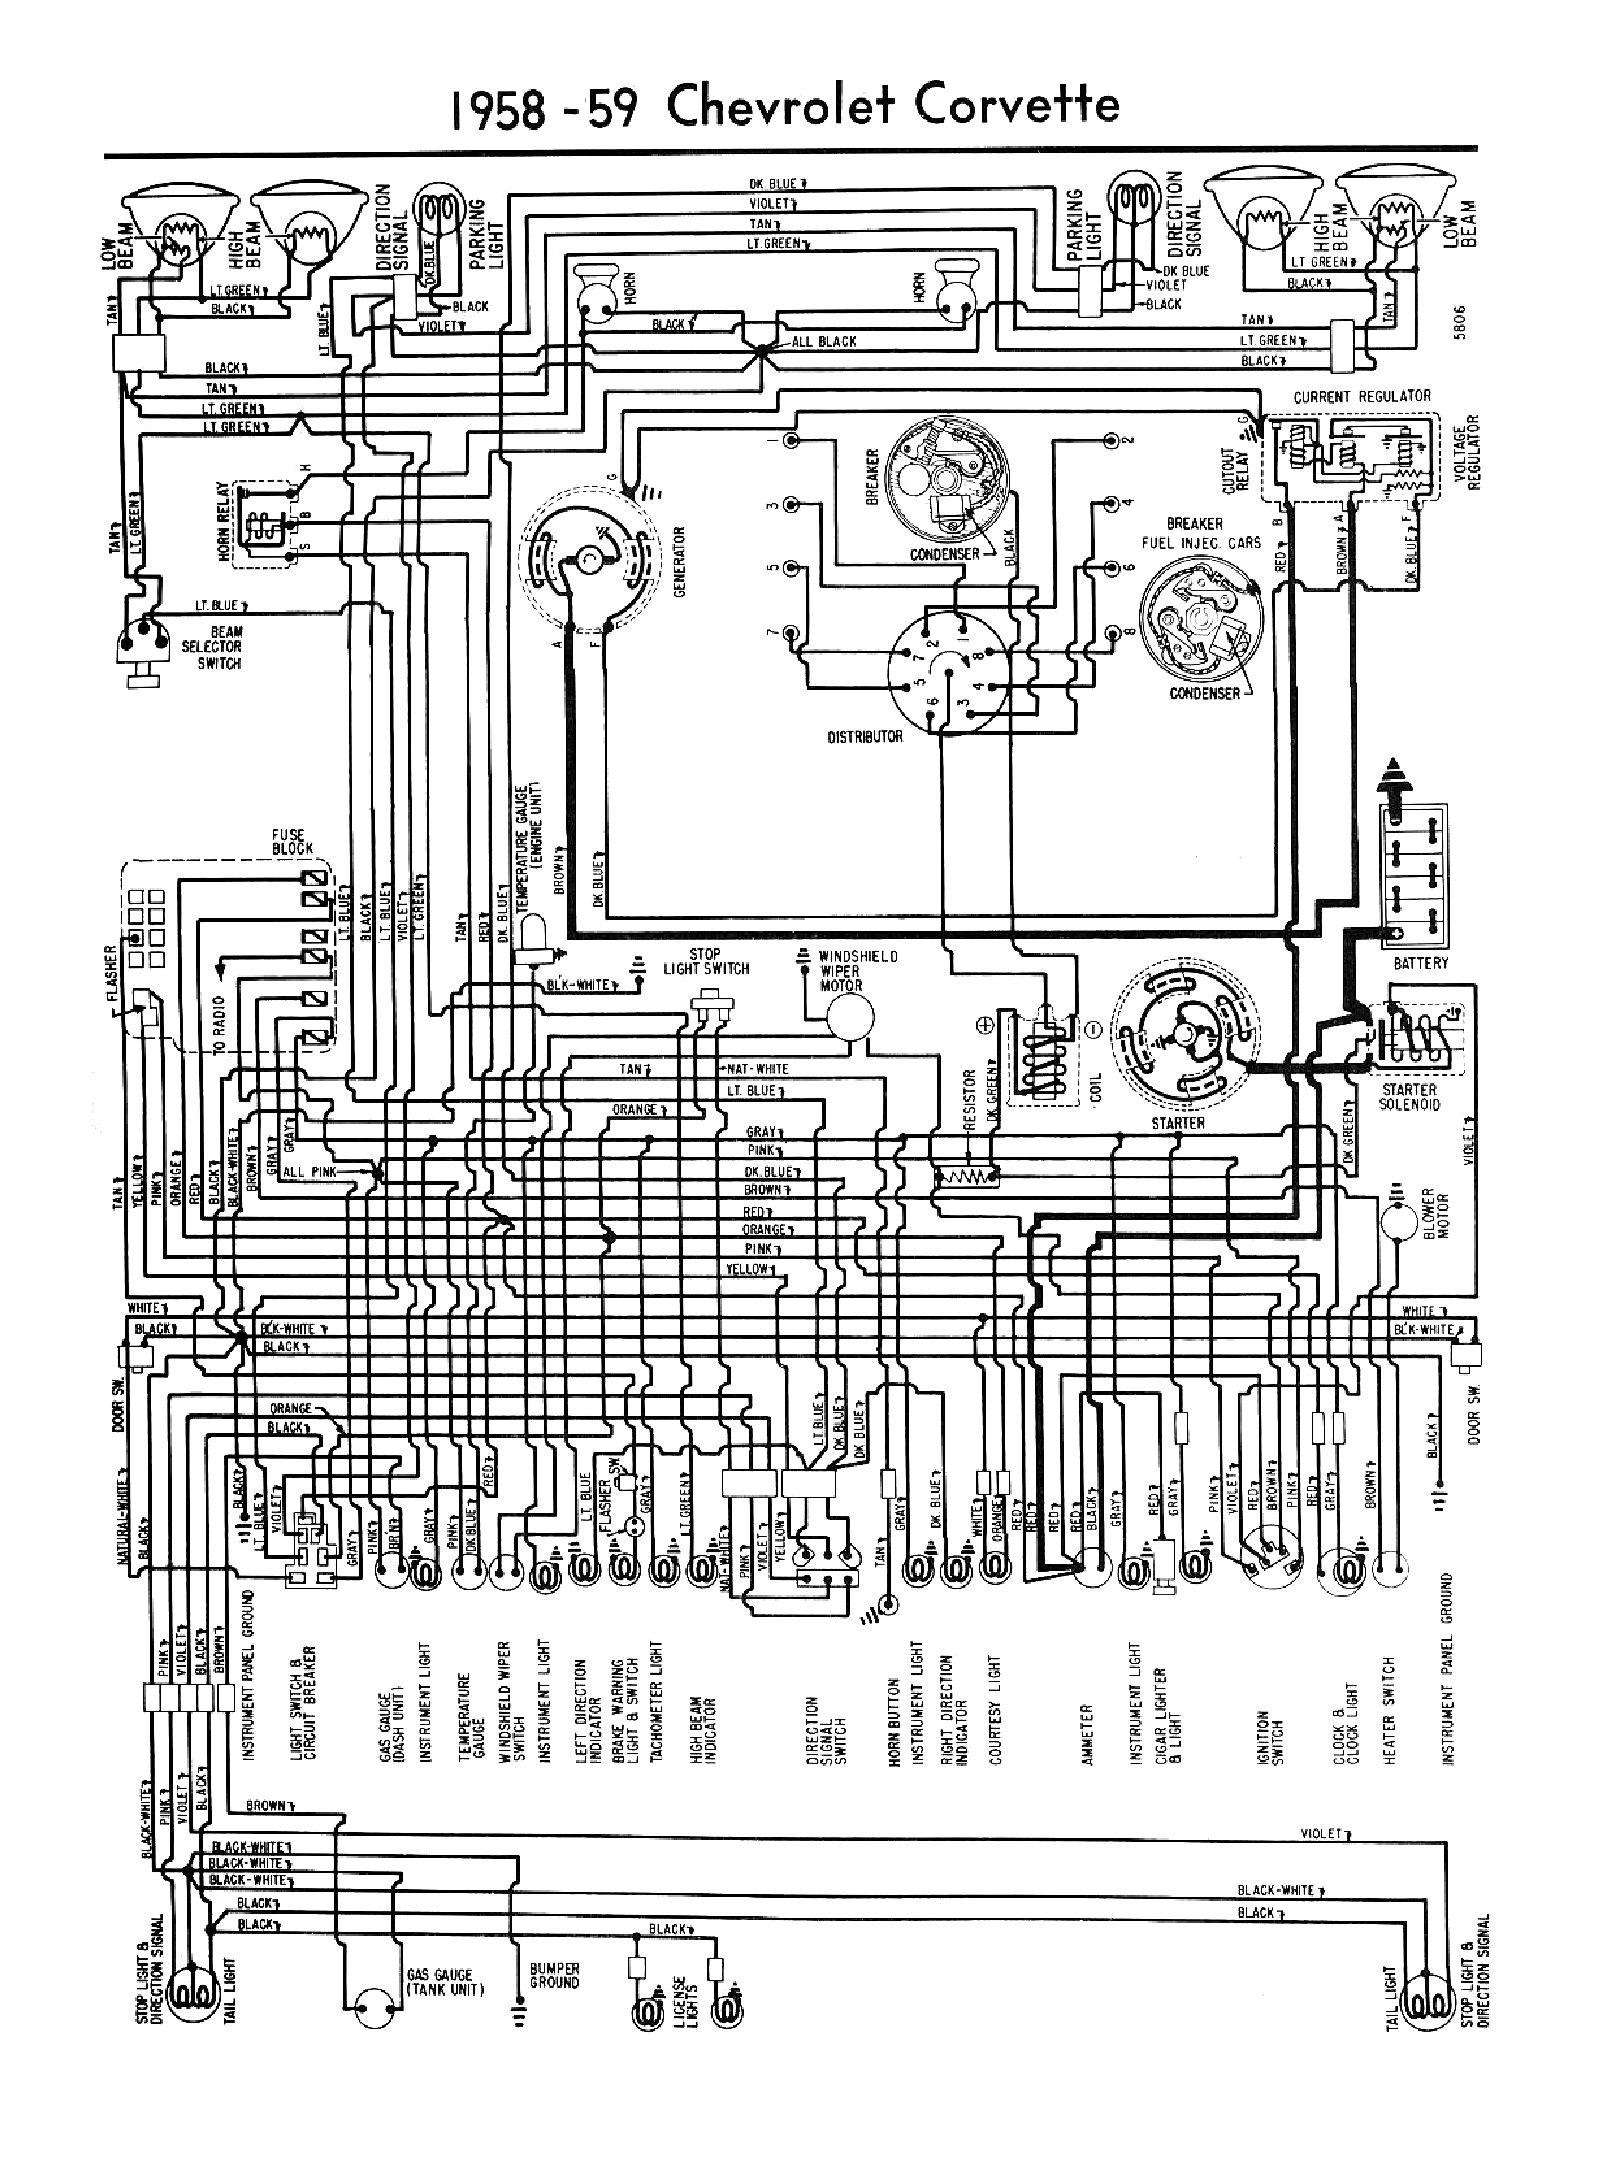 hight resolution of 76 corvette wiring diagram wiring diagrams 1981 corvette wiring diagram 1979 chevy corvette wiring schematic free download